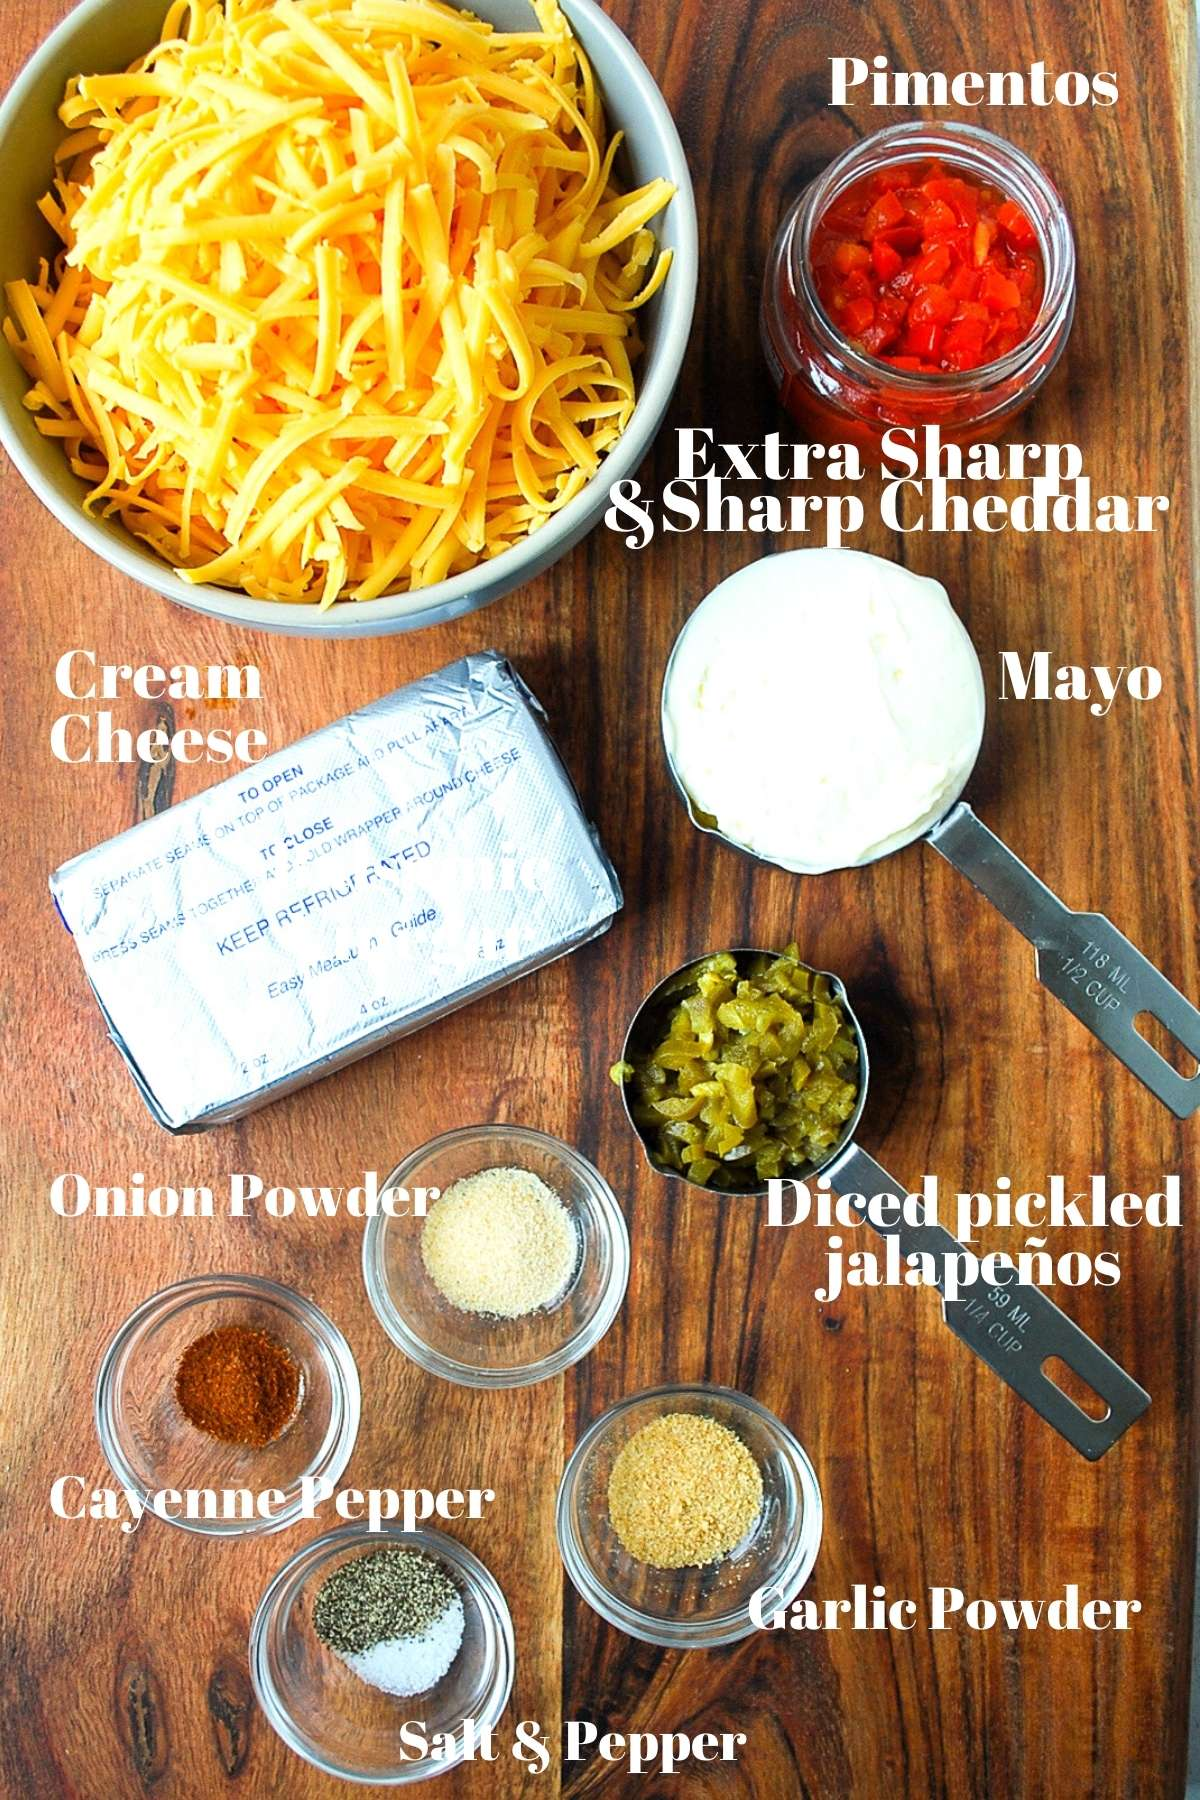 Shredded cheese, cream cheese, mayo, pimentos, jalapenos, and spices for making pimento cheese